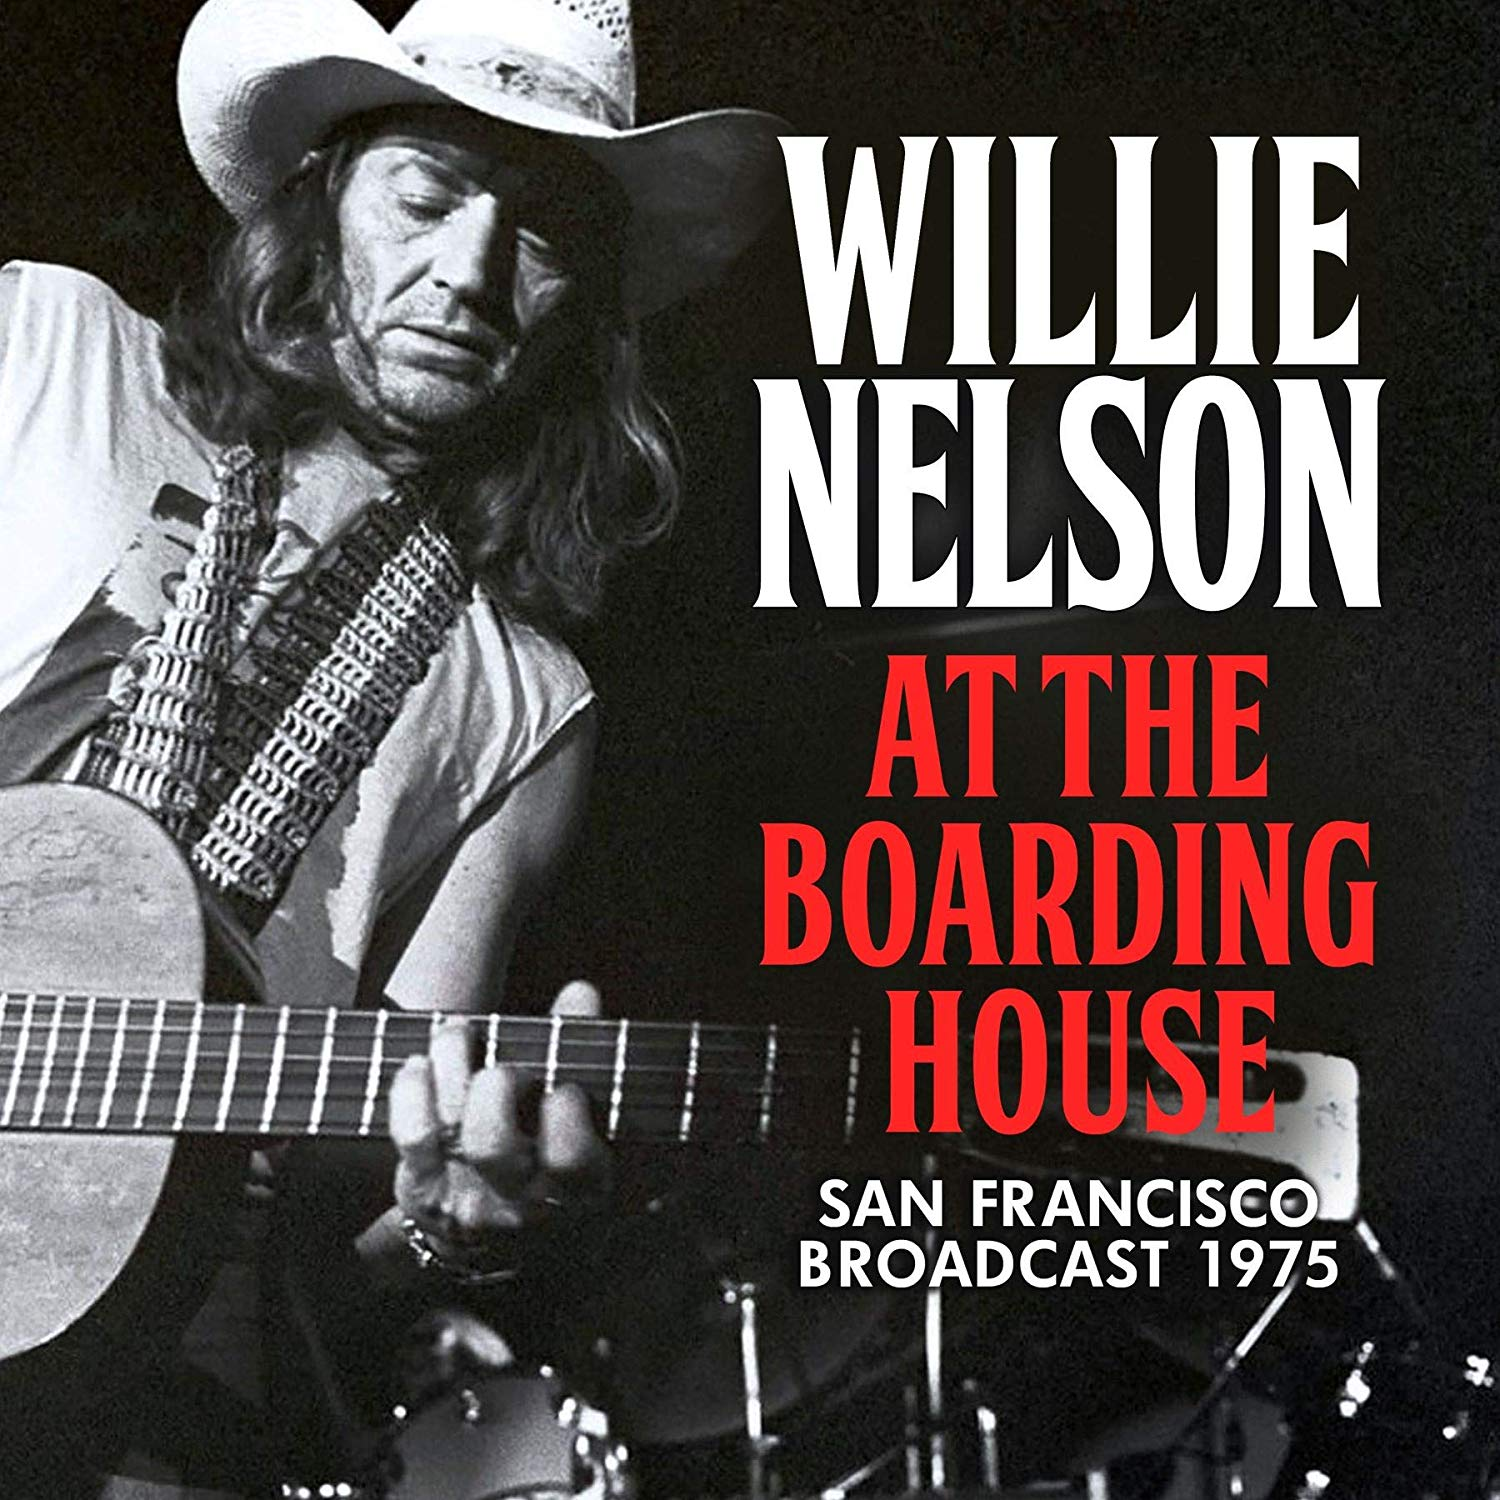 Willie Nelson - At The Boarding House